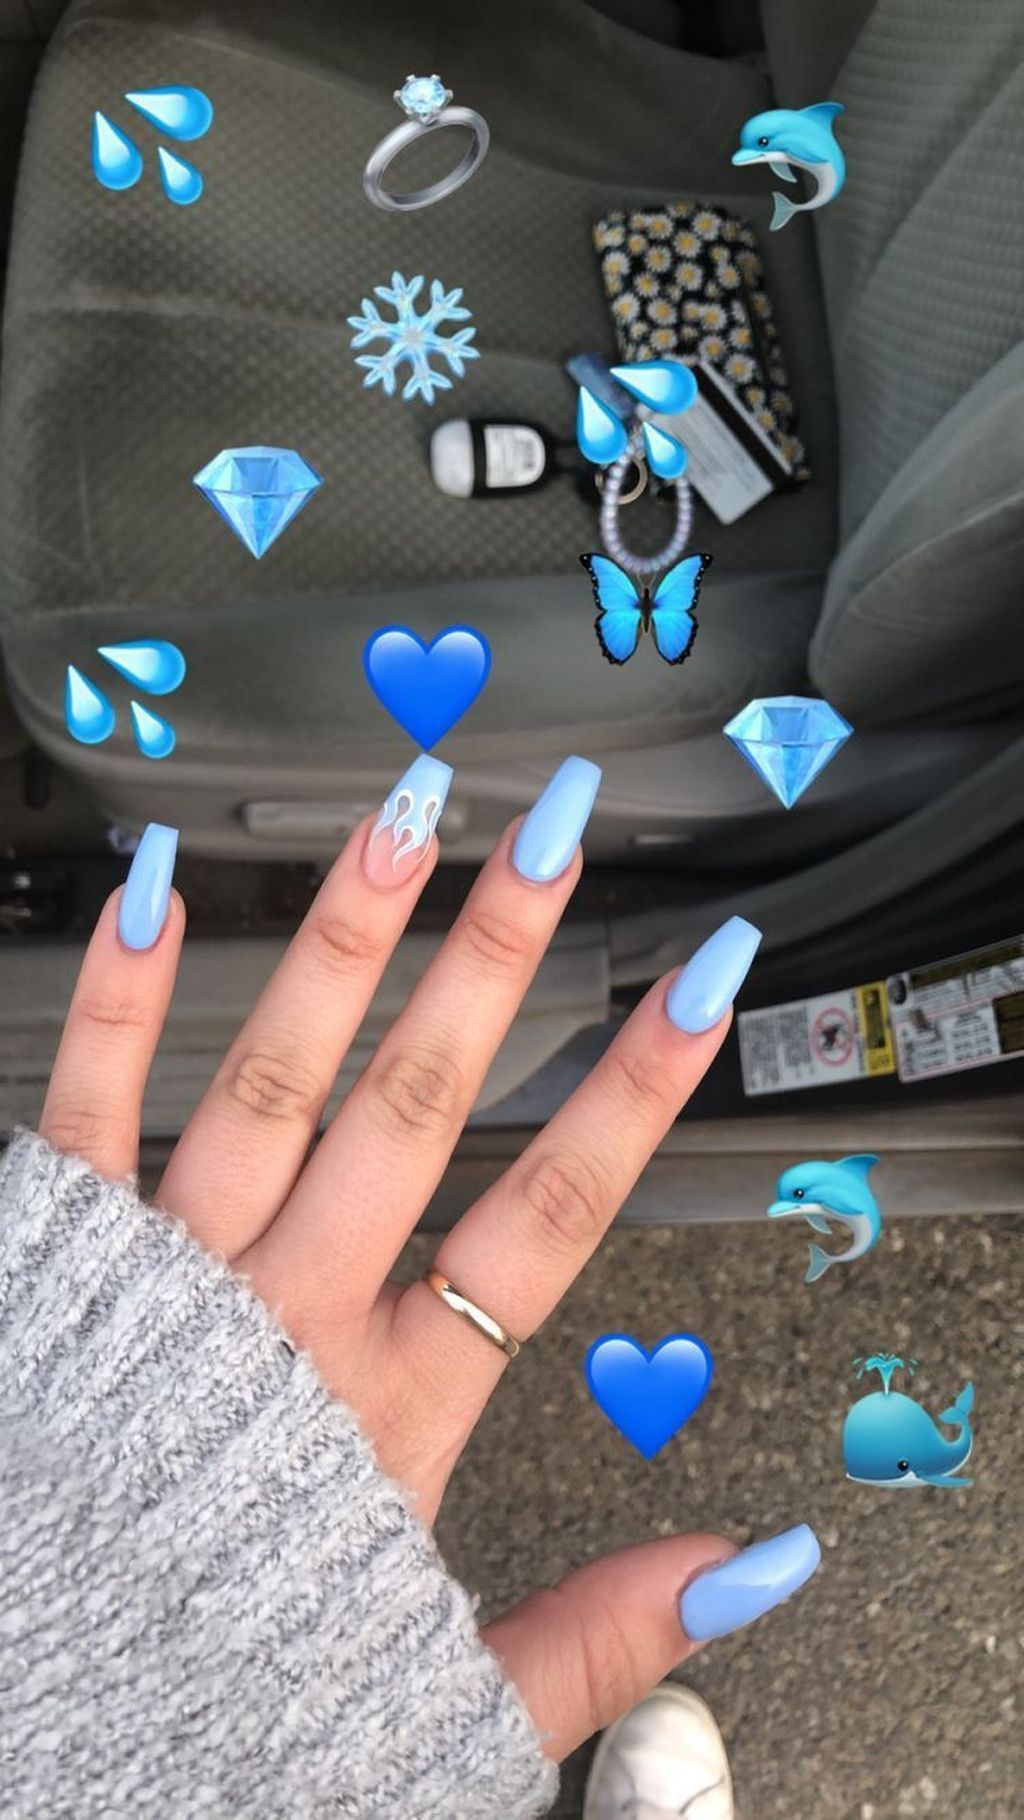 40 Perfect Acrylic Nail Designs Ideas For New Year 2020 In 2020